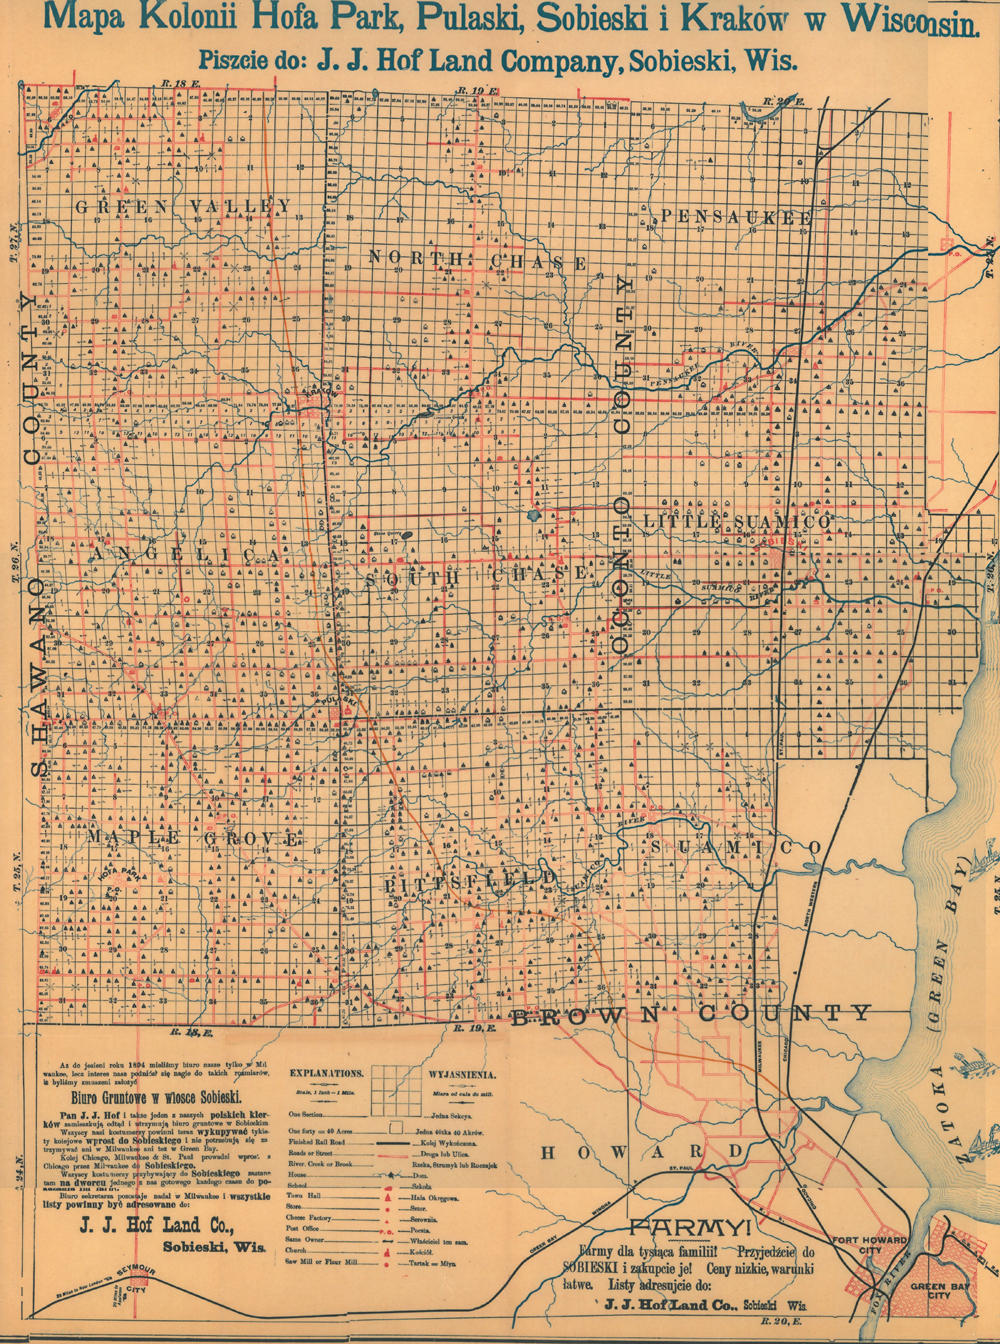 Old map of Pulaski Wisconsin